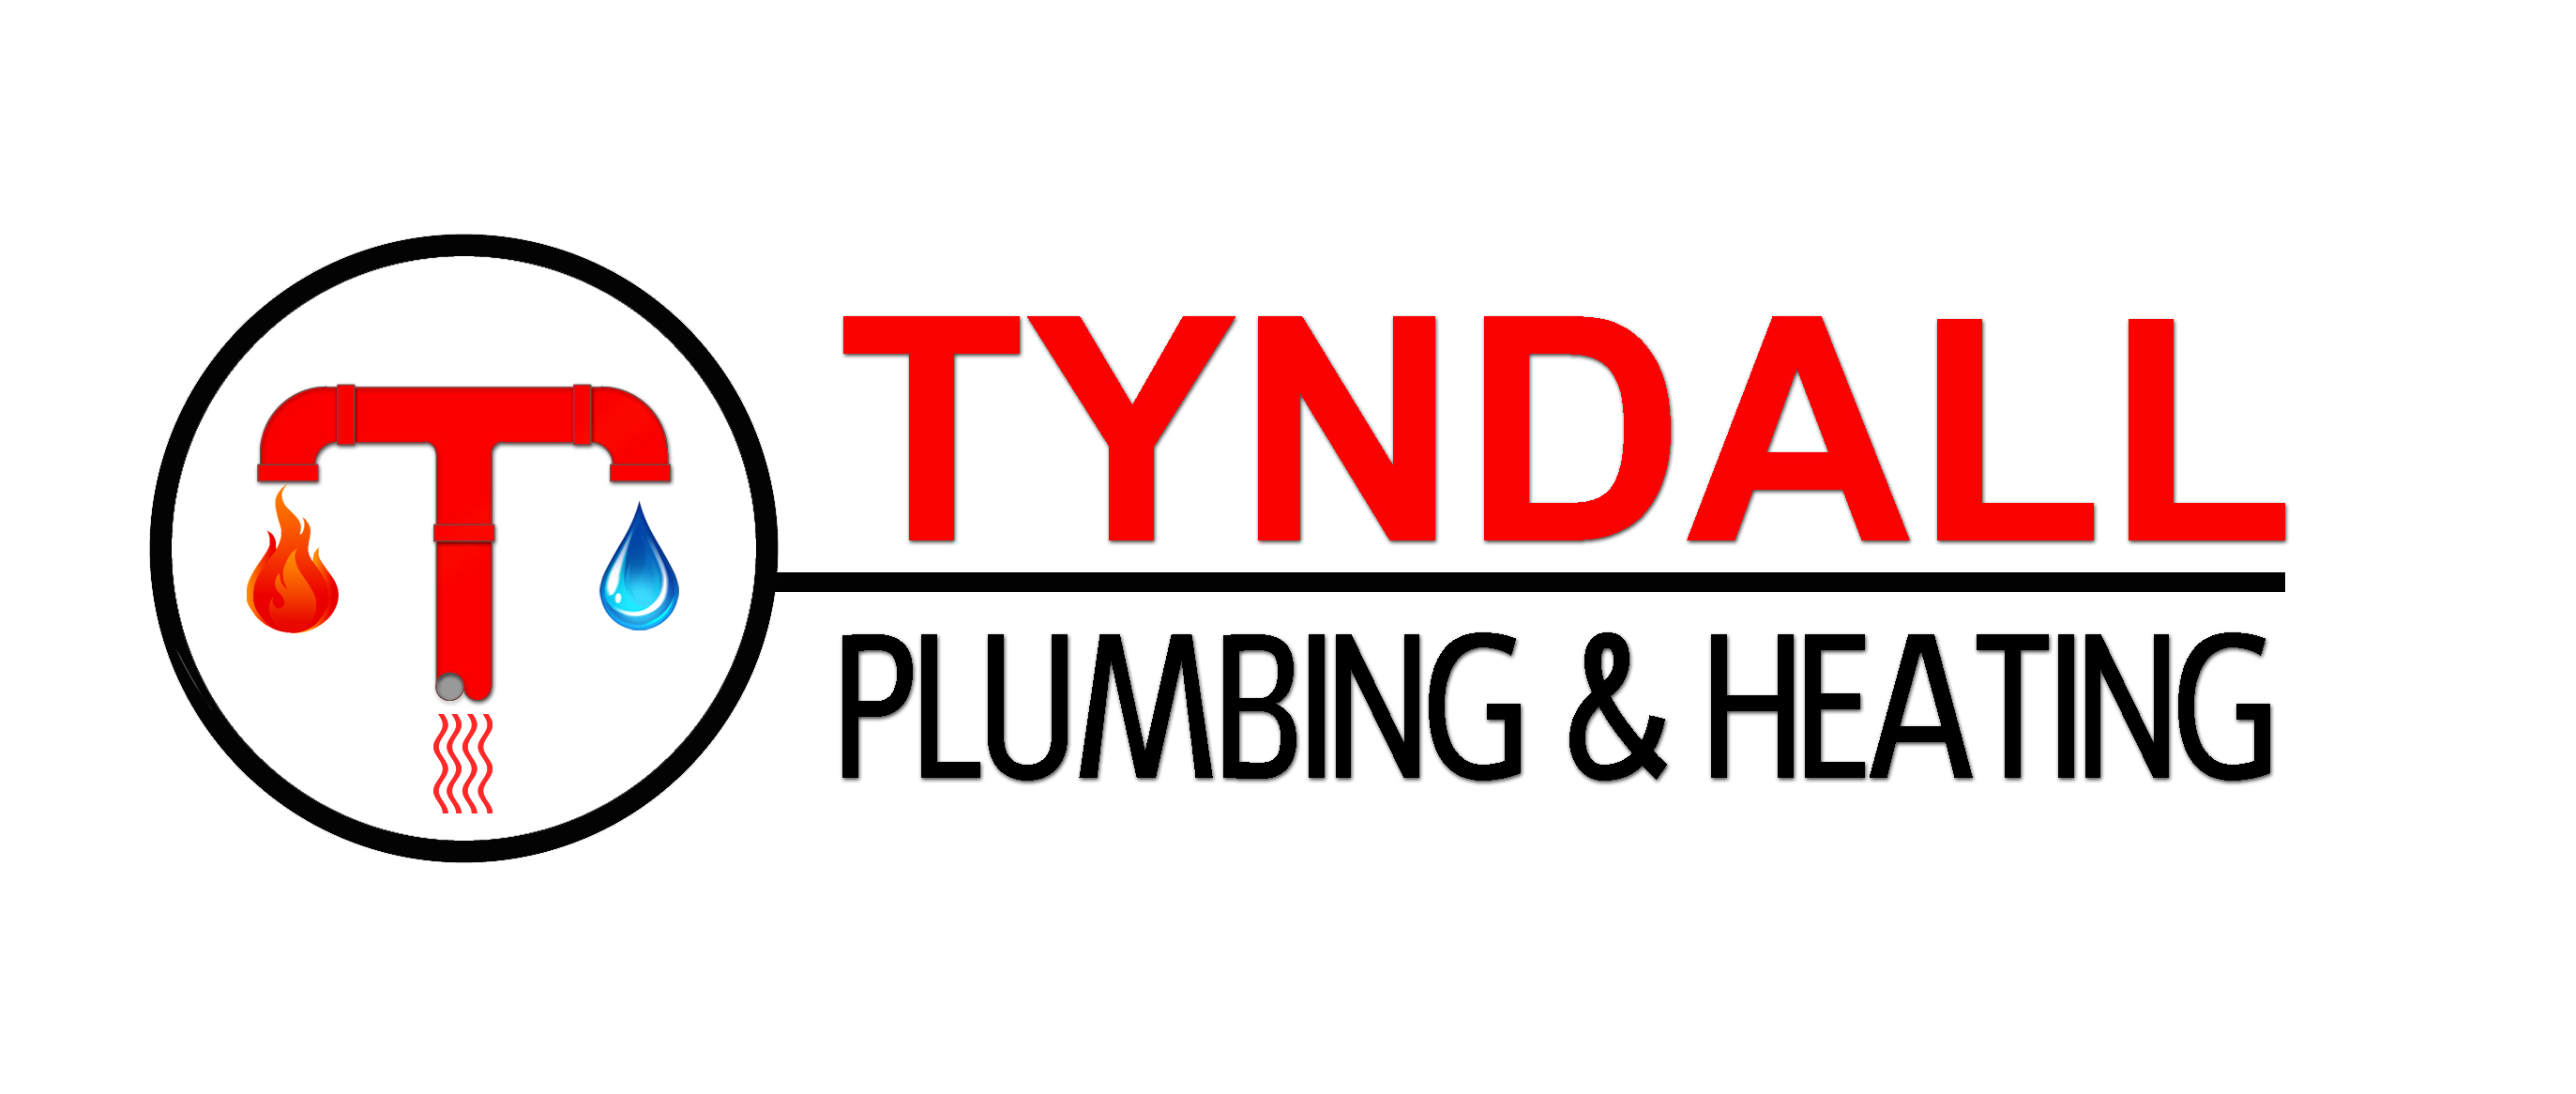 Logo Design by JSDESIGNGROUP - Entry No. 136 in the Logo Design Contest Imaginative Logo Design for Tyndall Plumbing & Heating.